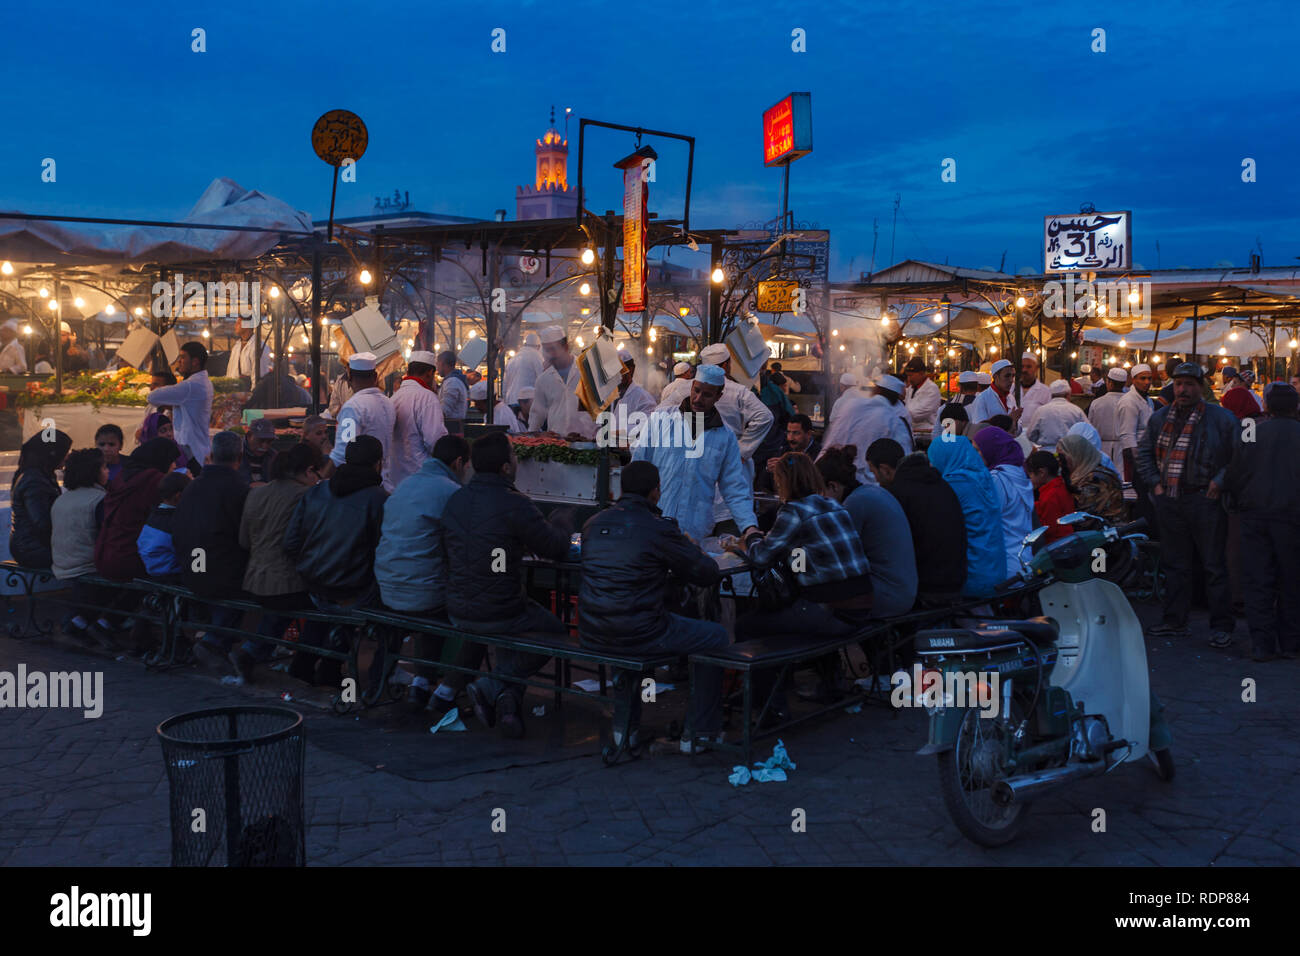 Families and tourists eating at crowded food market stalls in Marrakesh - Stock Image